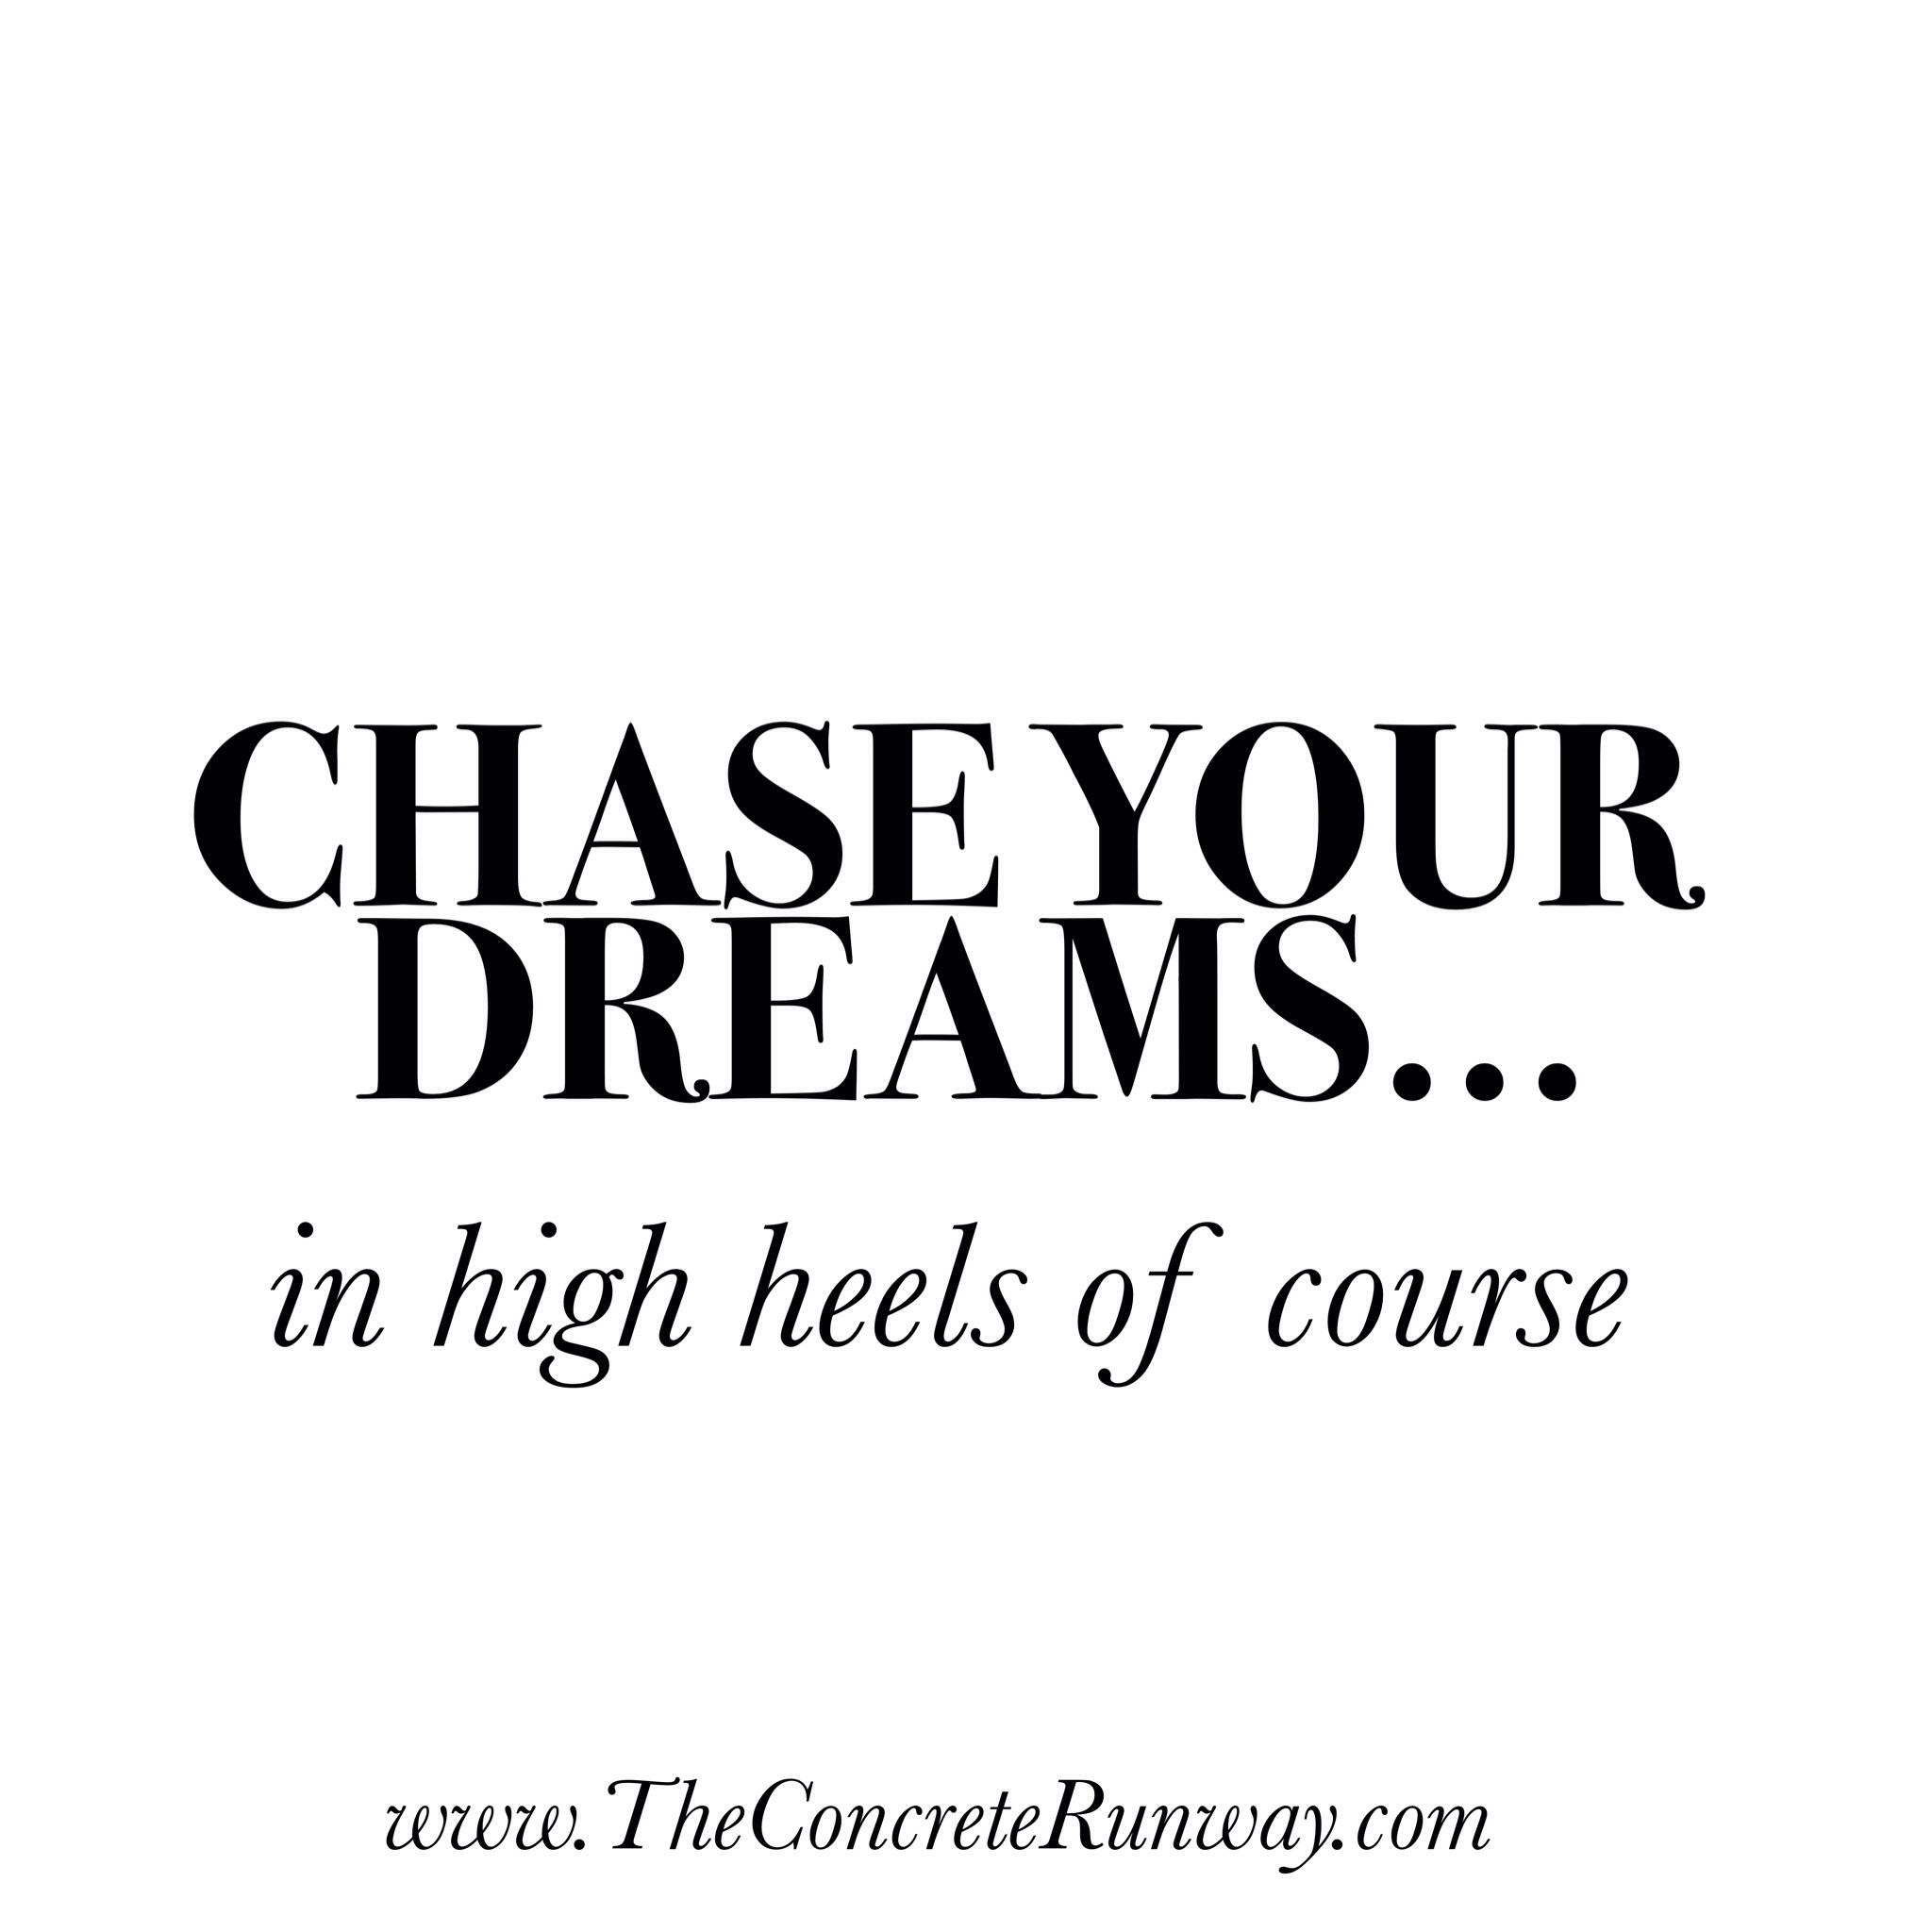 Inspirational fashion quotes to get you through your Monday! Chase your dreams...In high heels of course! ;)